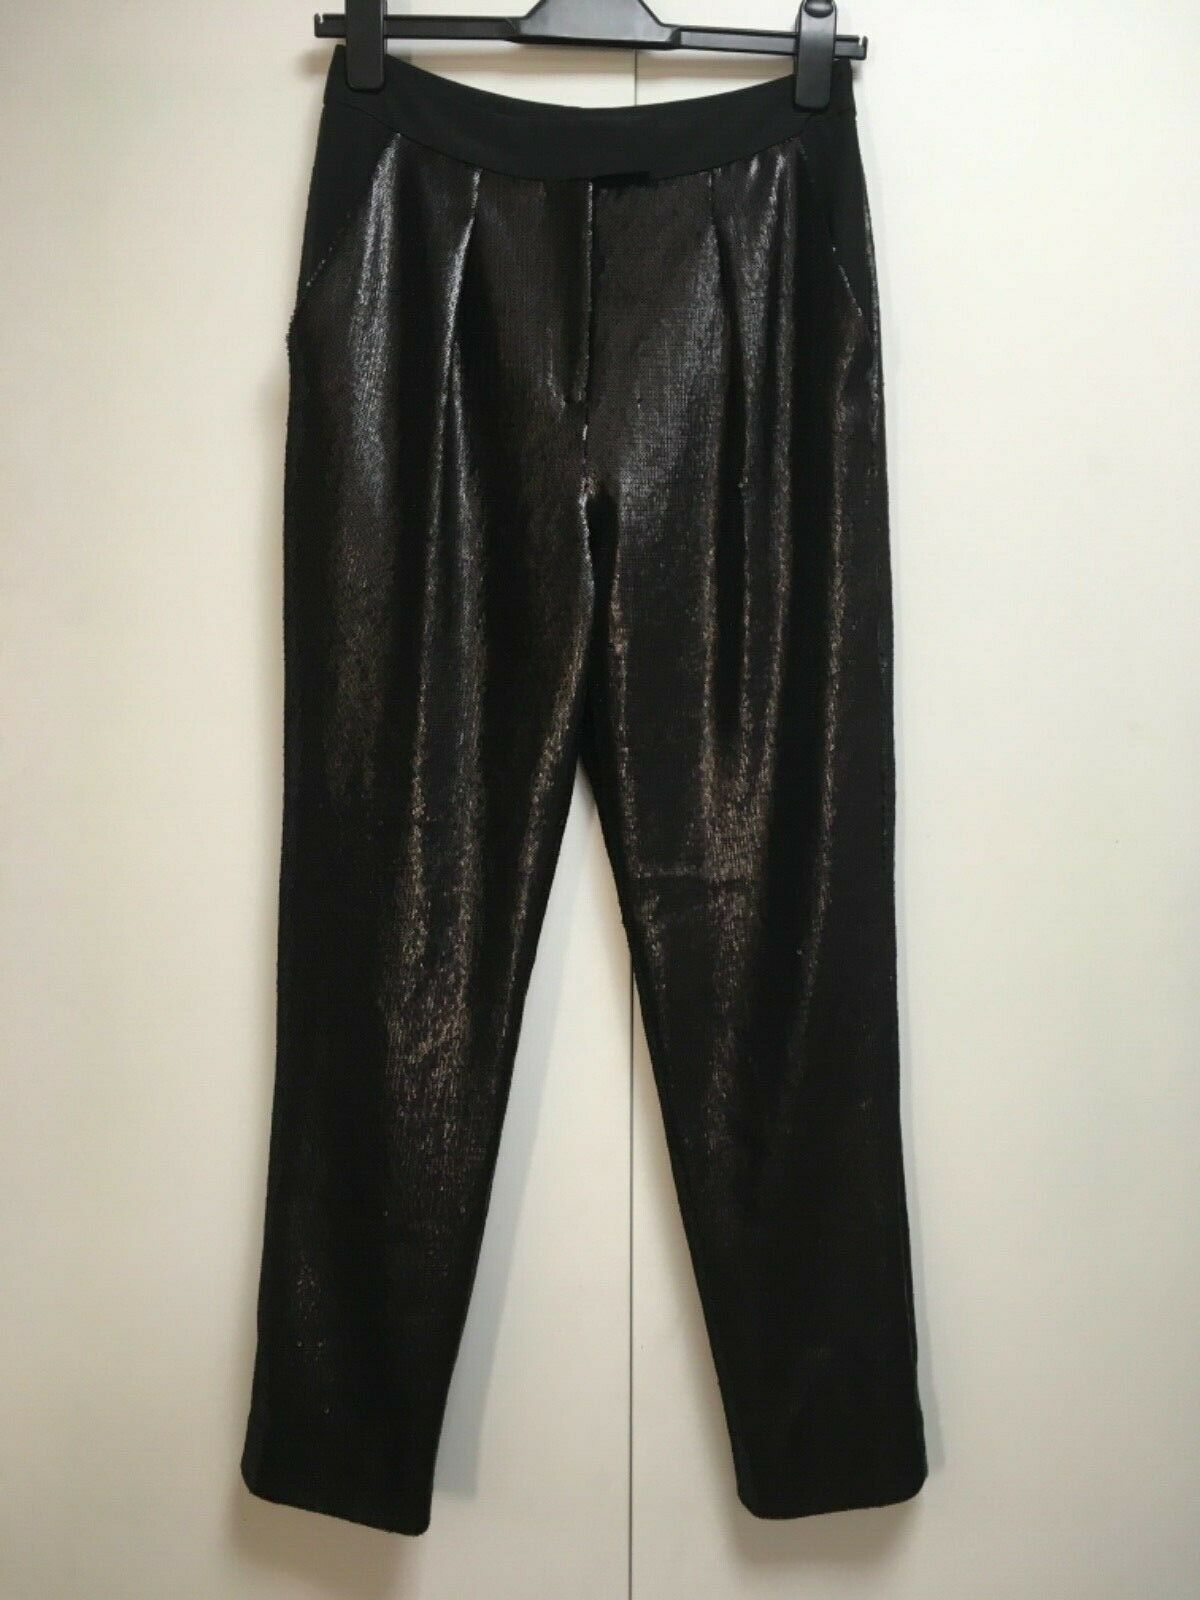 NEW Whistles schwarz sequin trousers stretchy taperot evening pockets 8